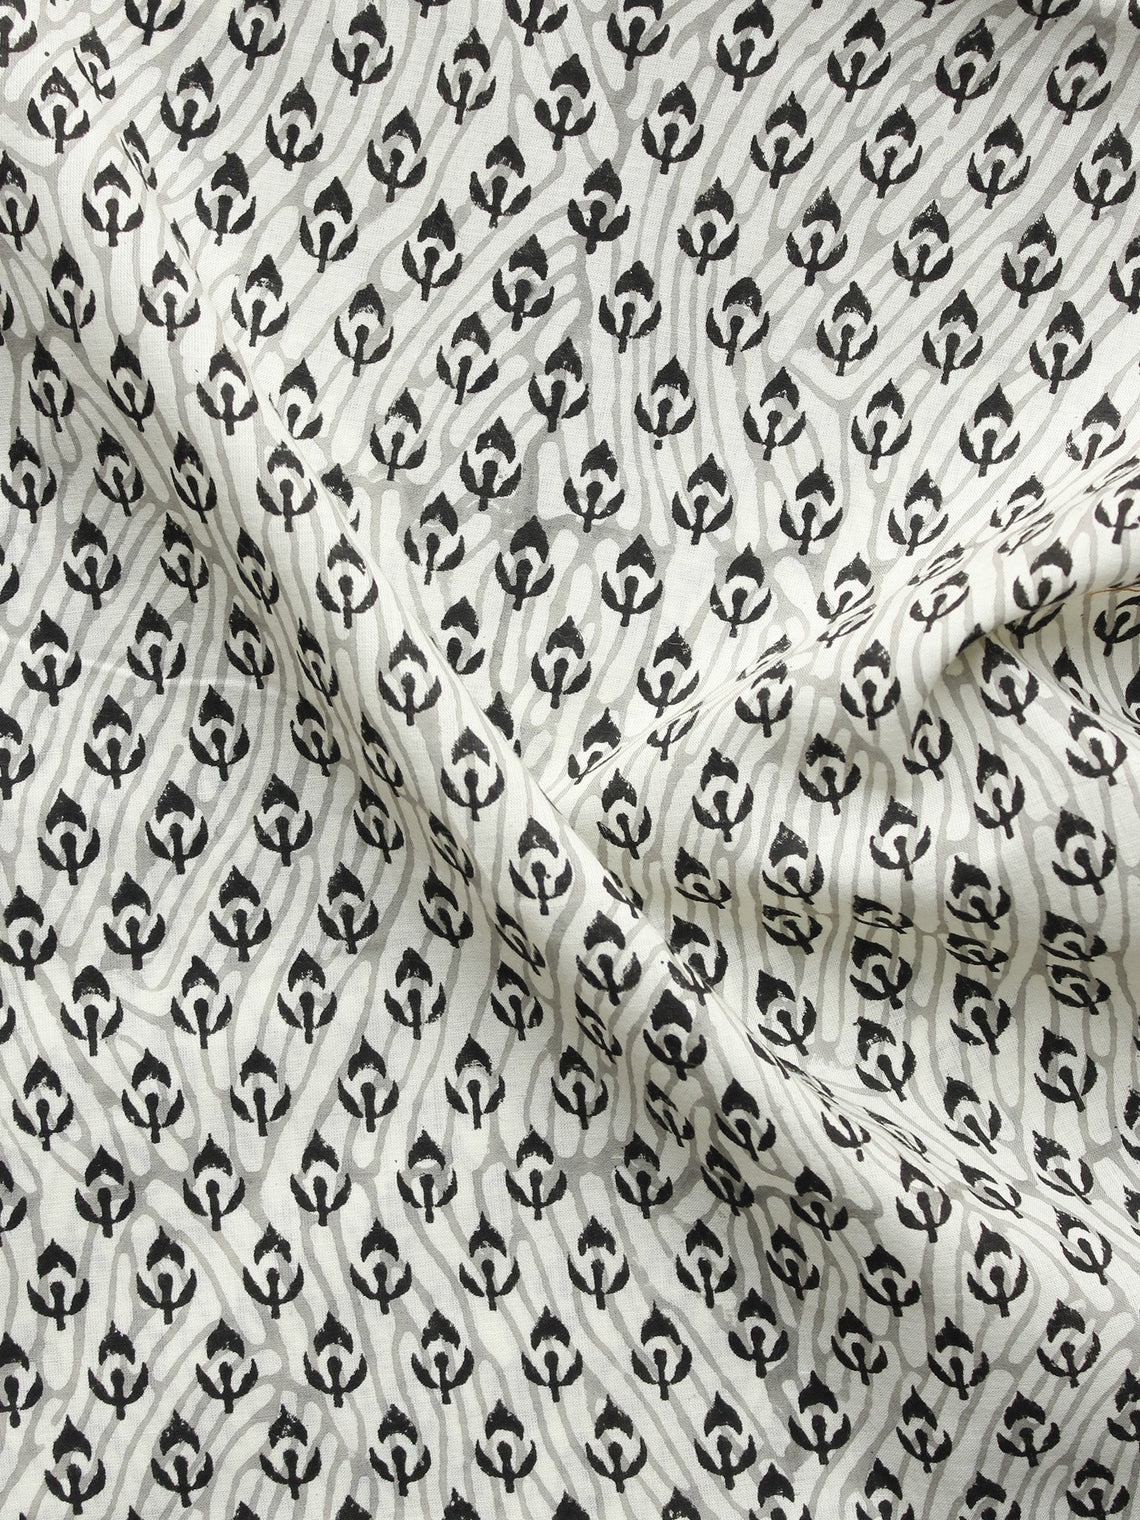 Ivory Grey Black Hand Block Printed Cotton Fabric Per Meter - F001F1058